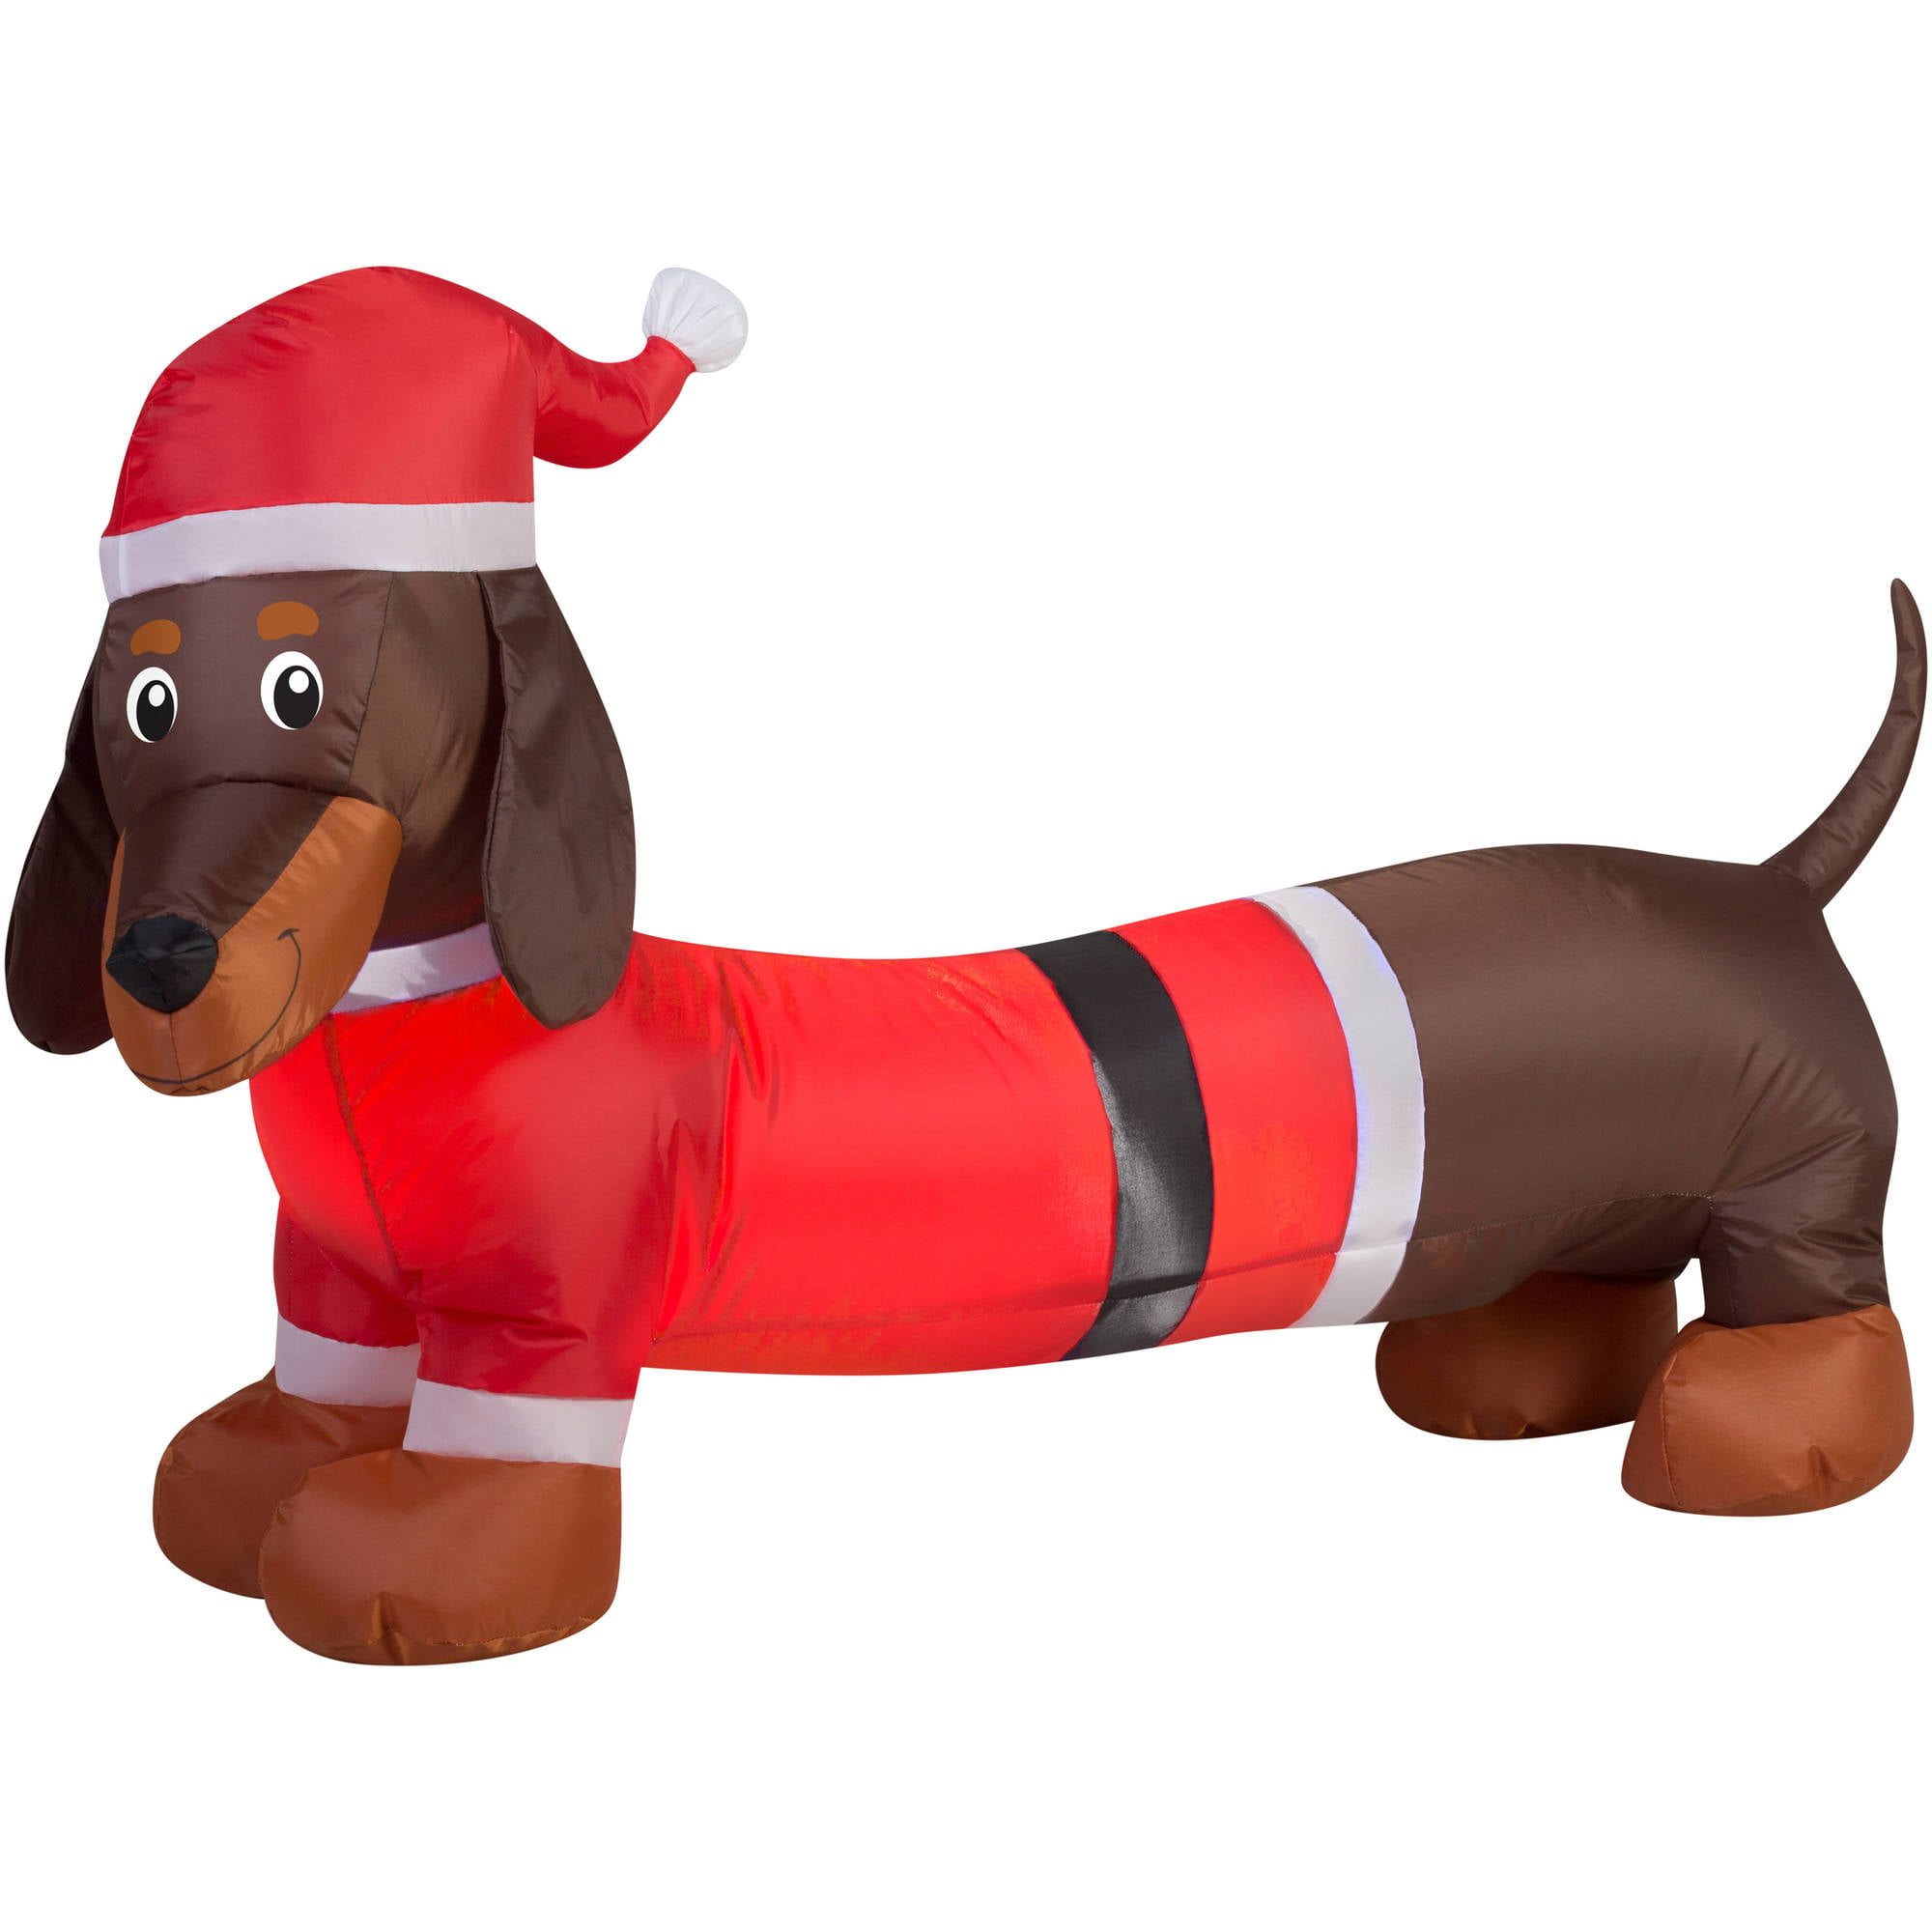 holiday time 4ft weiner dog inflatable walmartcom - Outdoor Dog Christmas Decorations